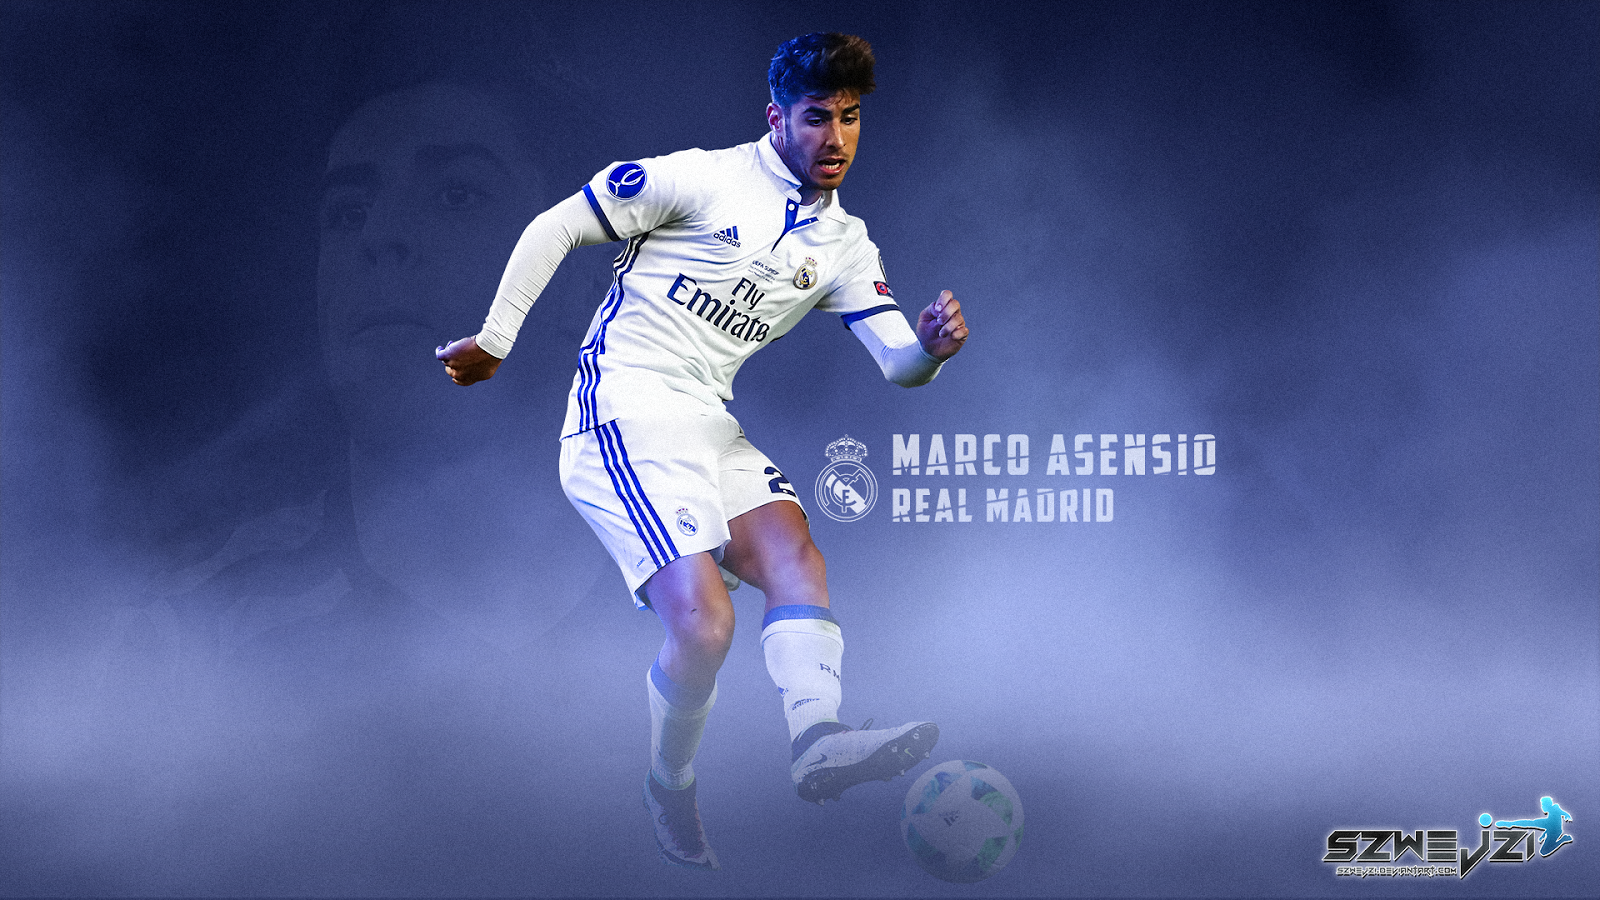 1600x900 - Marco Asensio Wallpapers 15